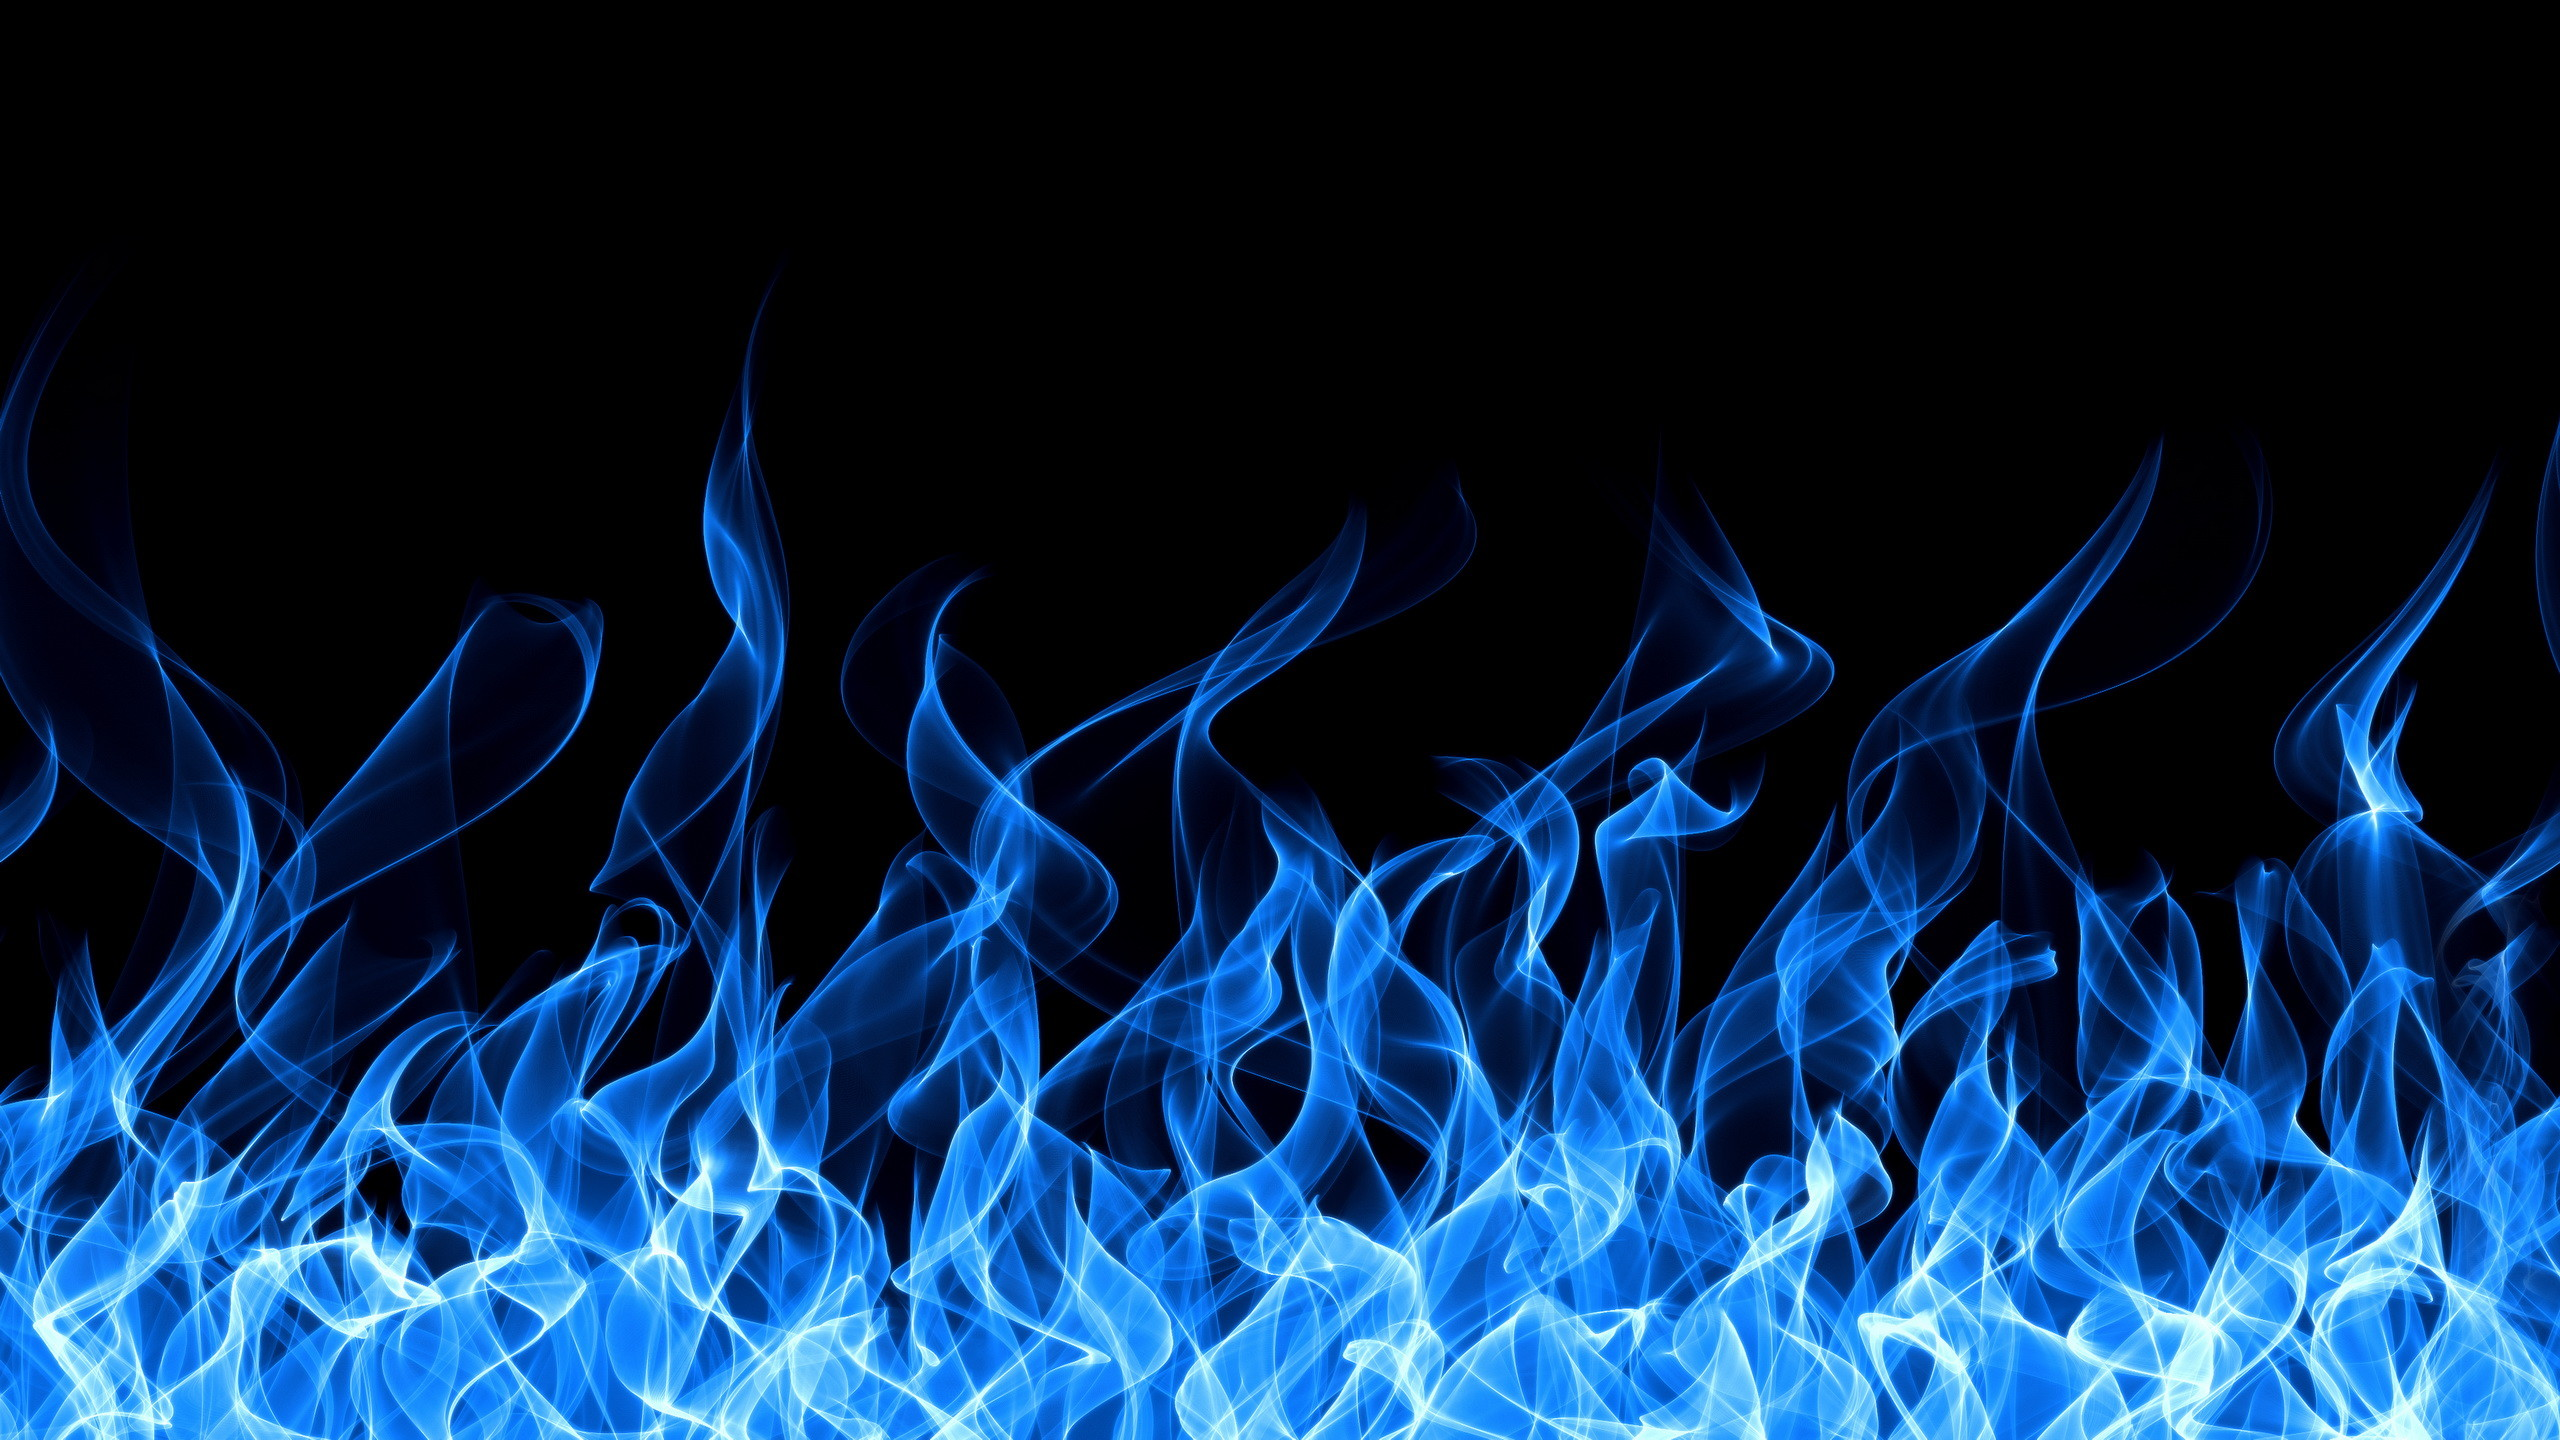 Blue Fire Background Wallpapertag